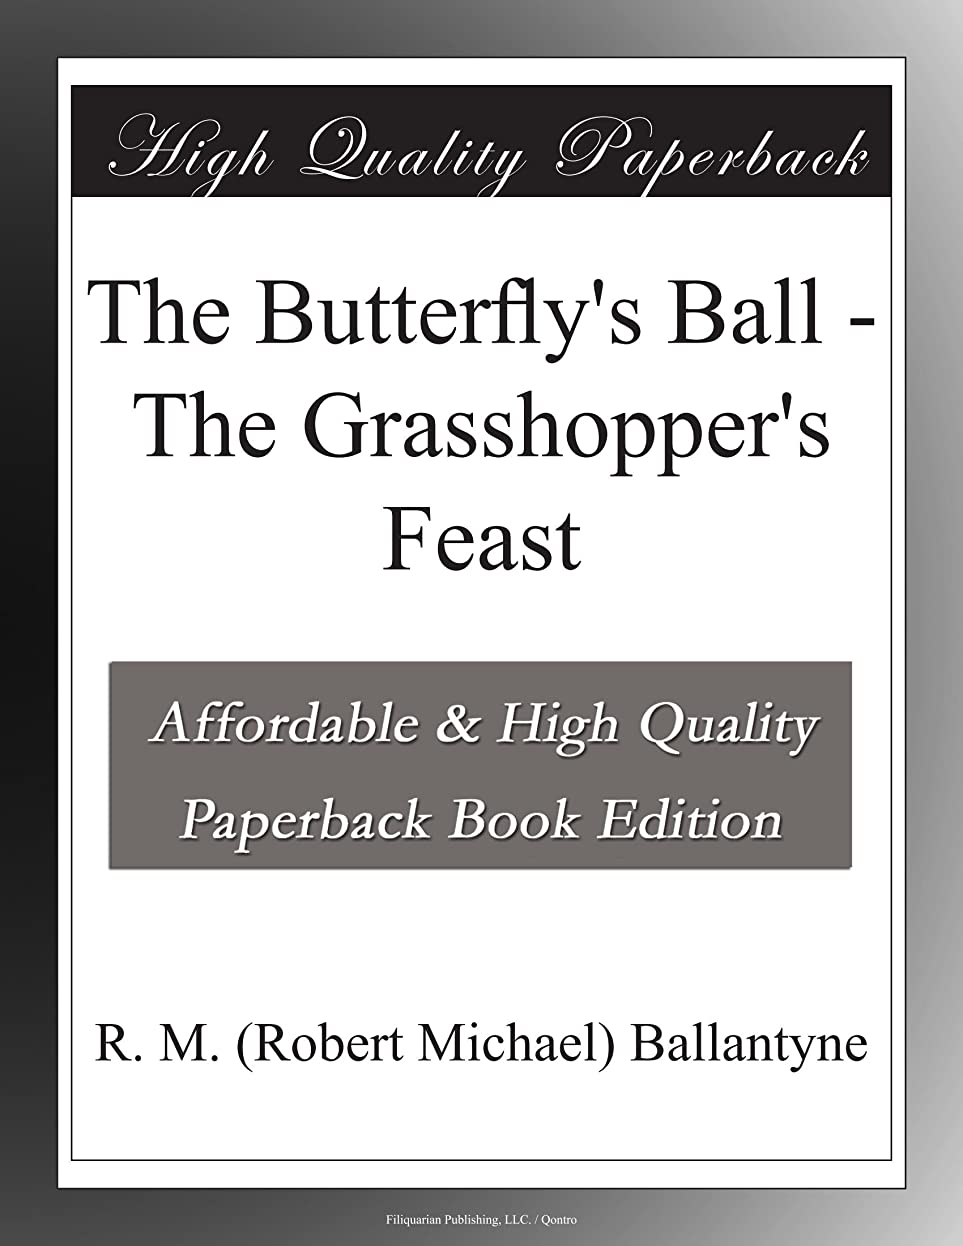 フォアマン魚骨髄The Butterfly's Ball - The Grasshopper's Feast